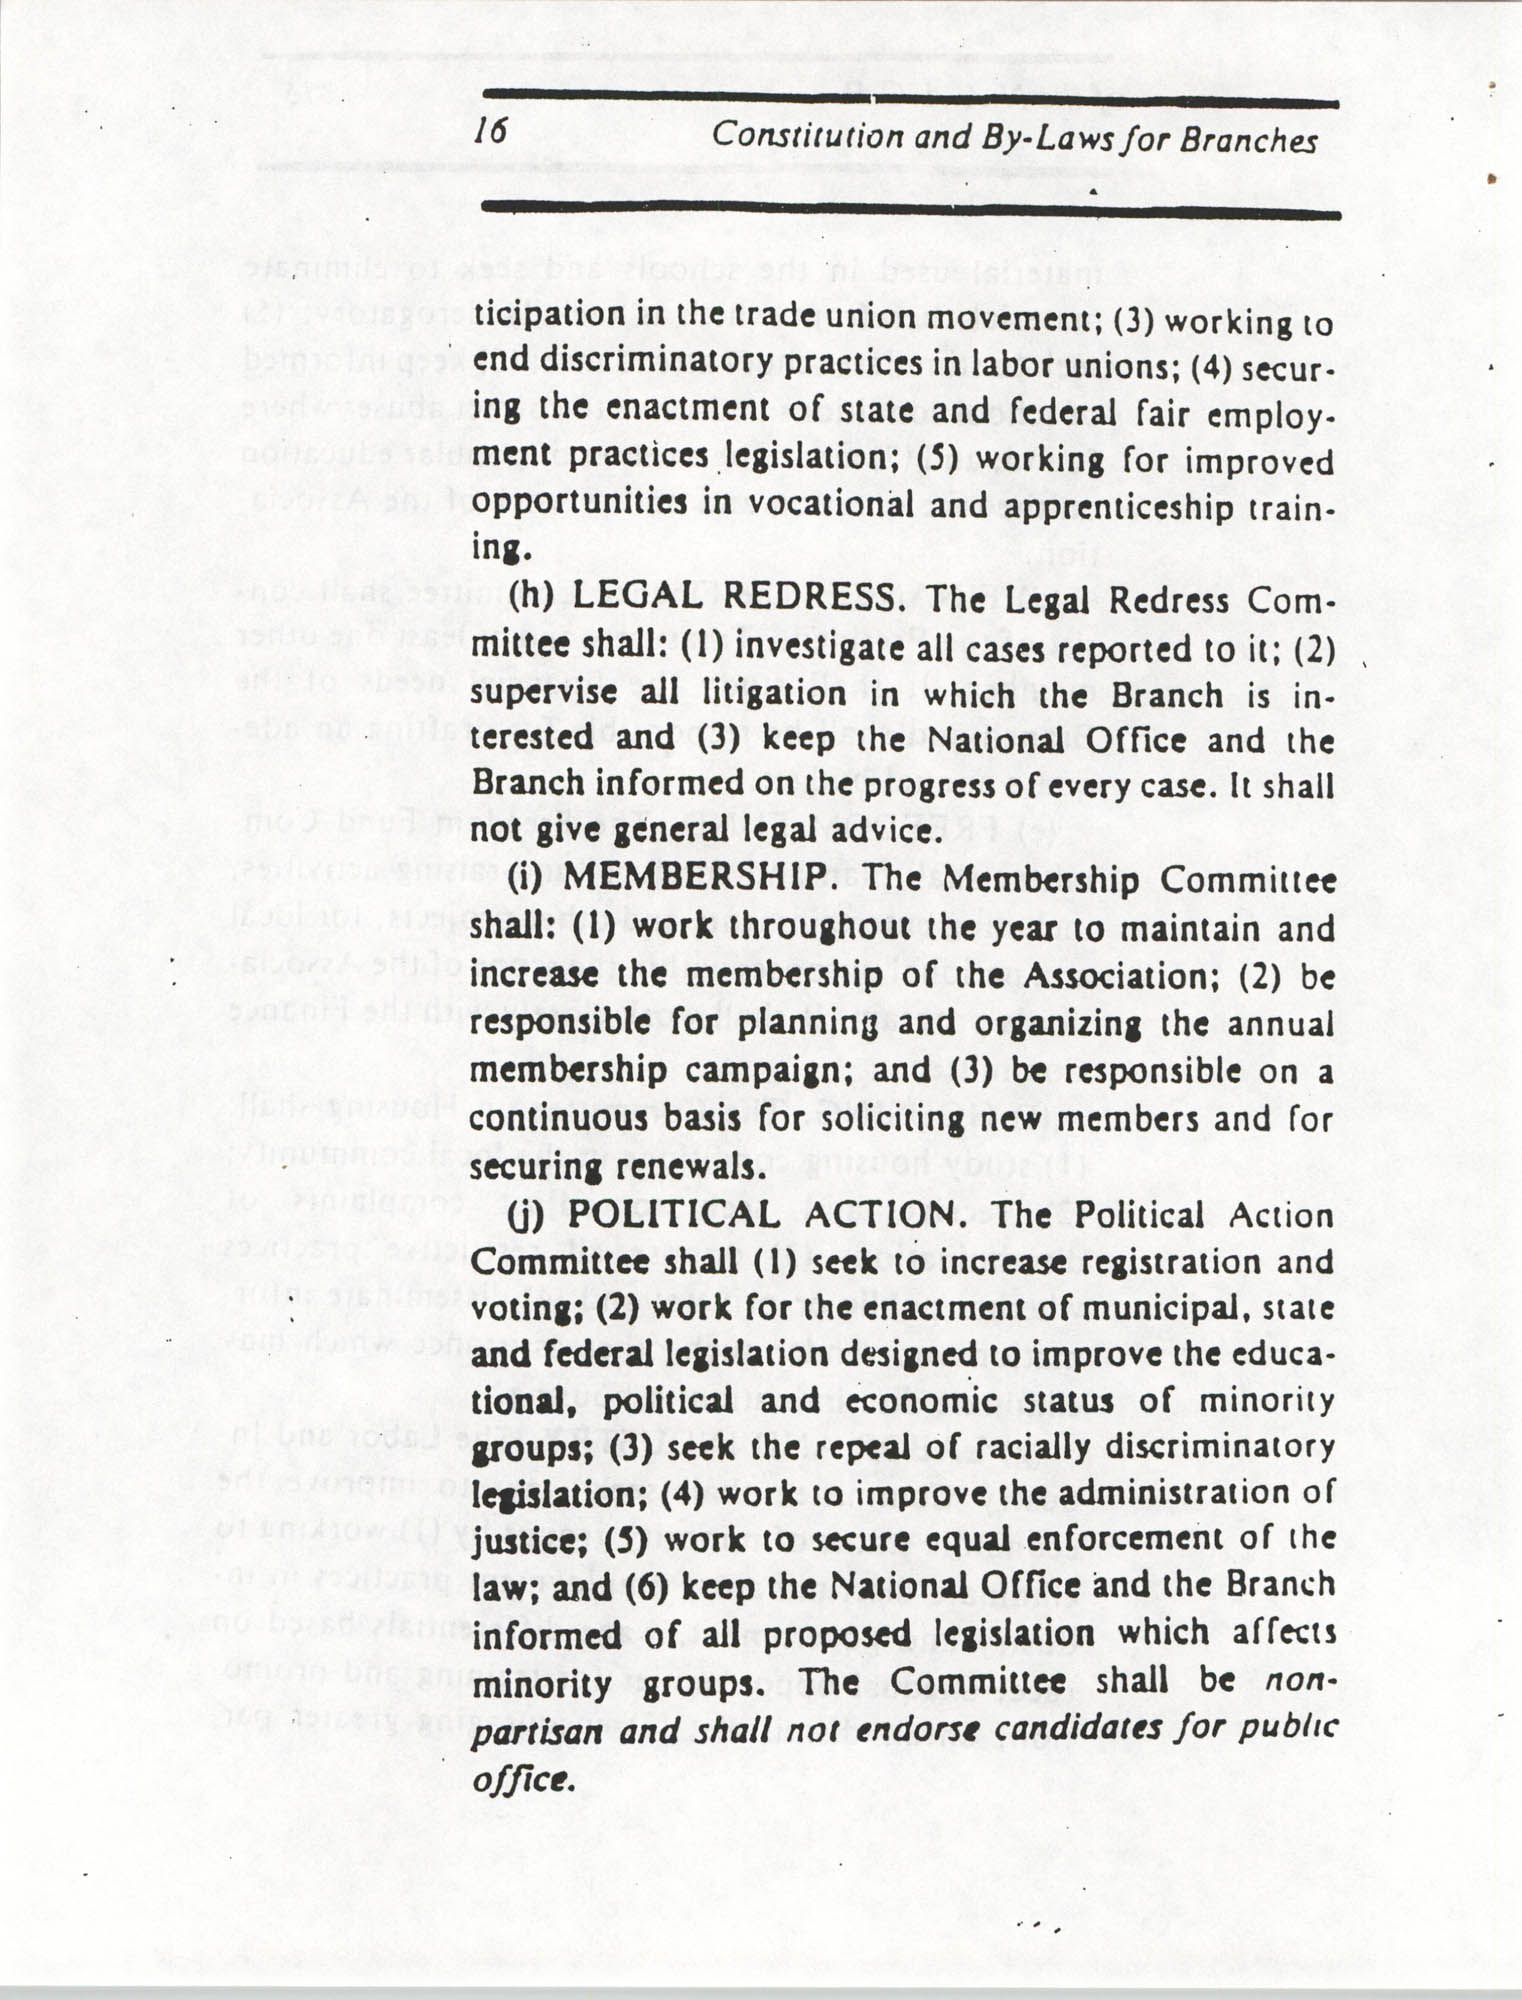 Constitution and By-Laws for Branches of the NAACP, March 1992, Page 16